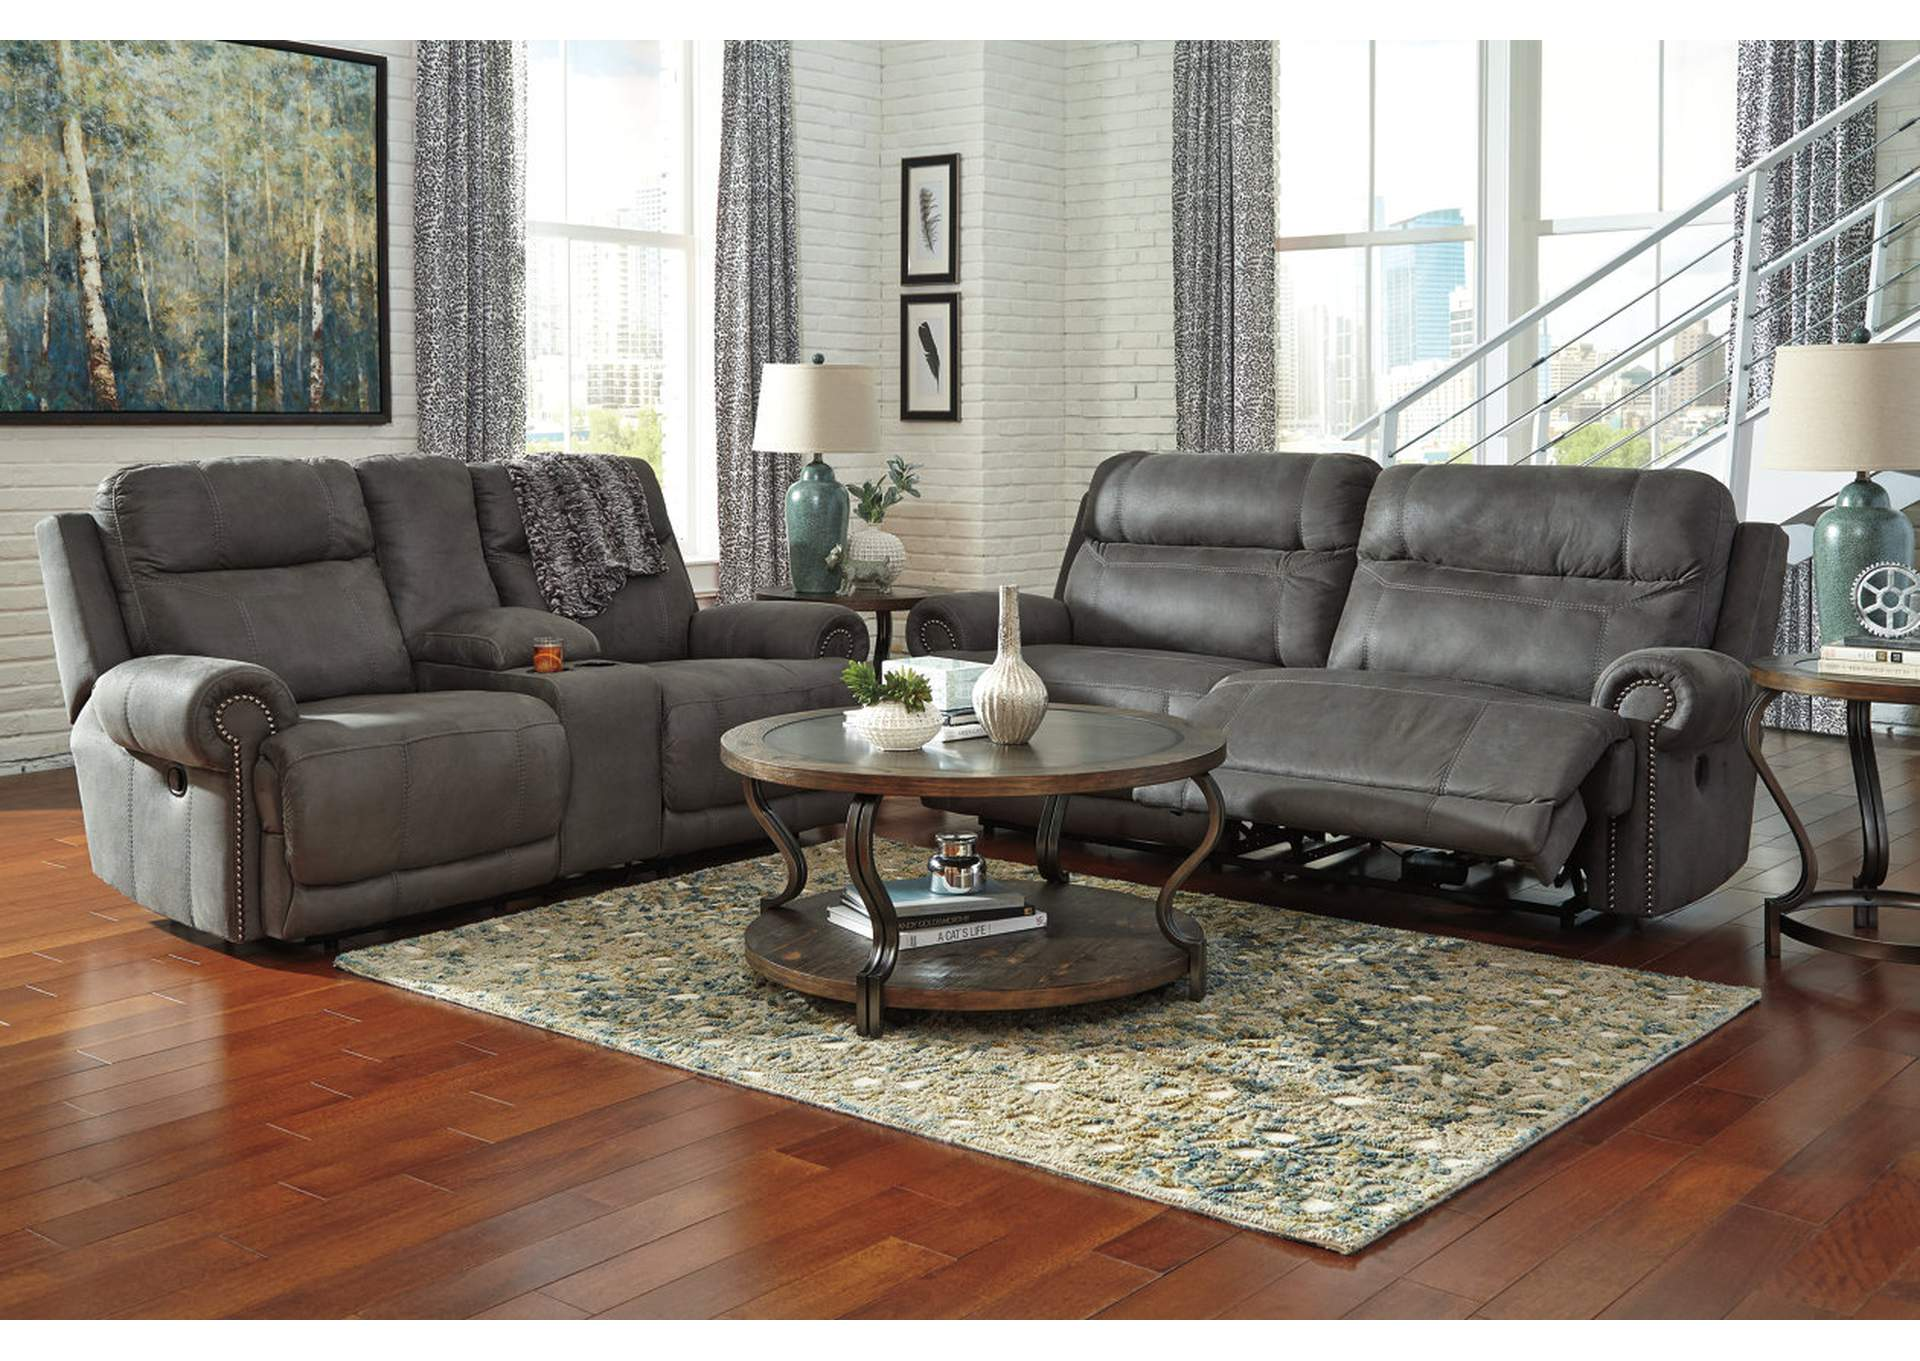 Austere Gray 2 Seat Reclining Sofa & Loveseat,Signature Design By Ashley